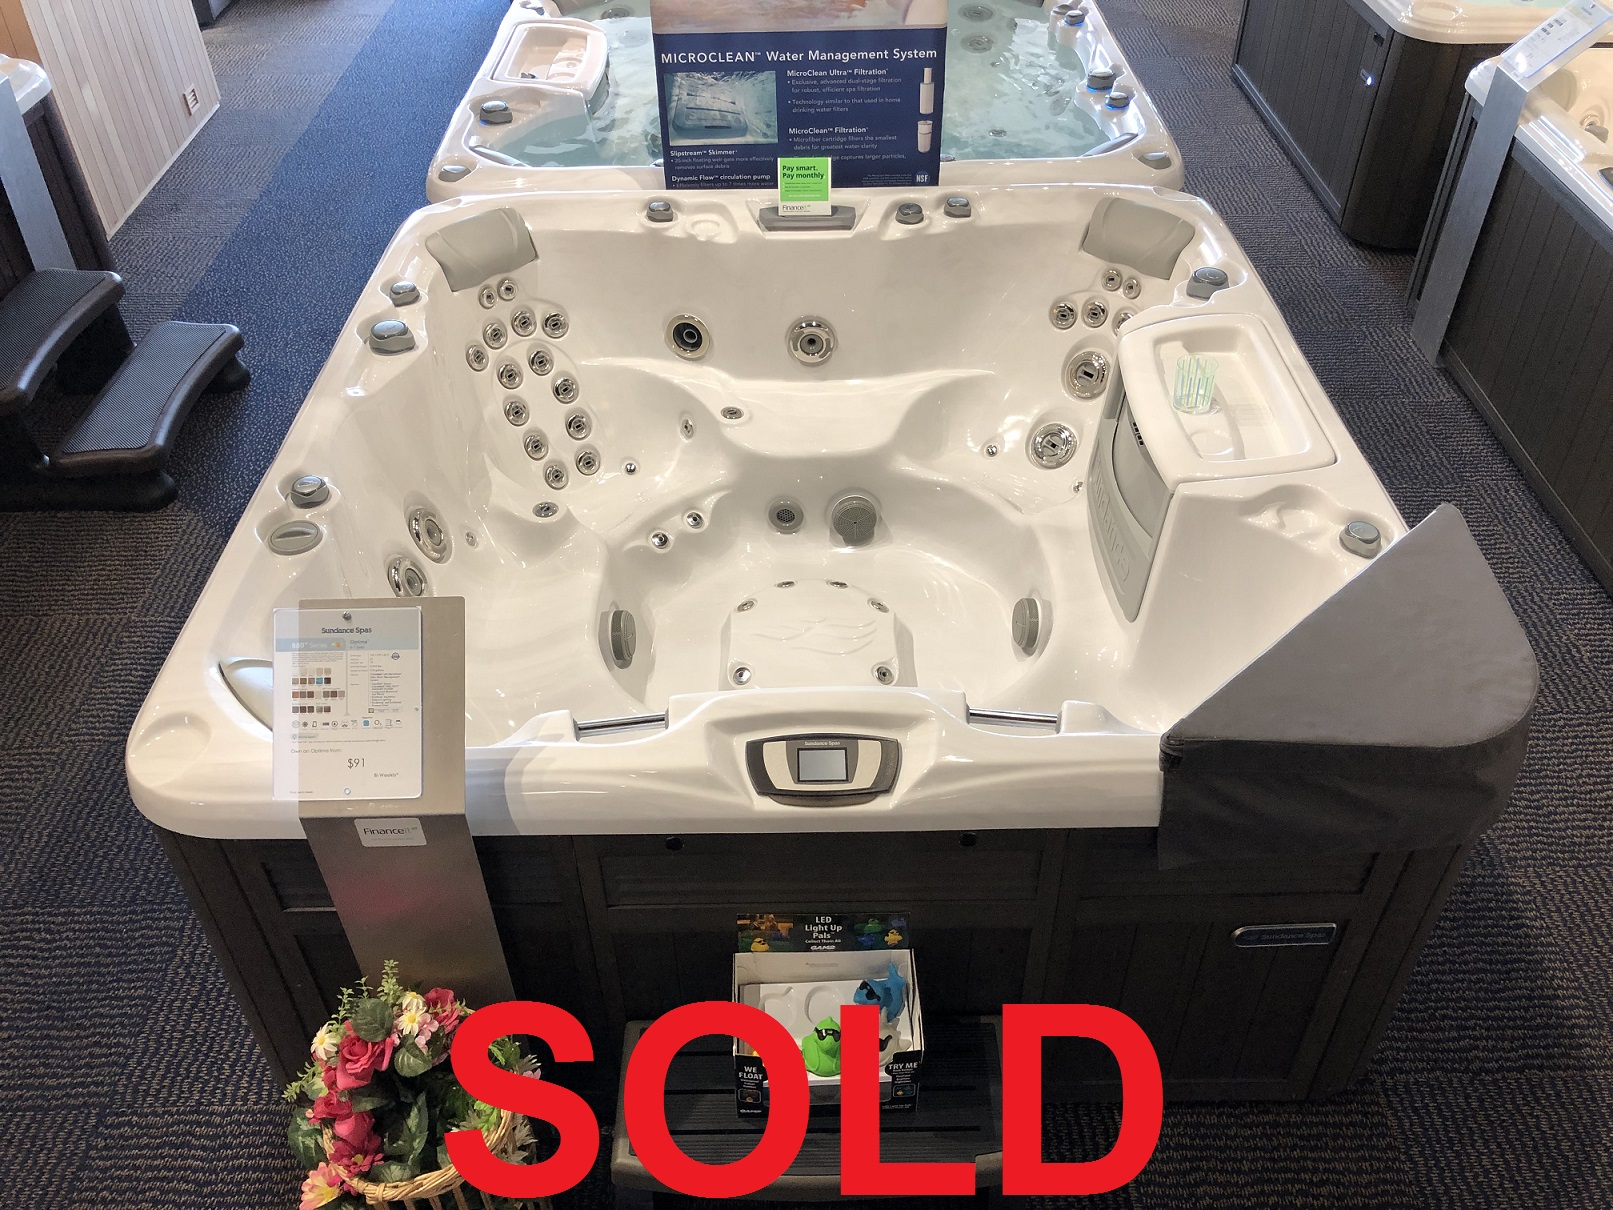 Sundance Spas Optima 7 person hot tub spa whirlpool sale special specials hot tubs whirlpools jacuzzis near me Burlington Ontario